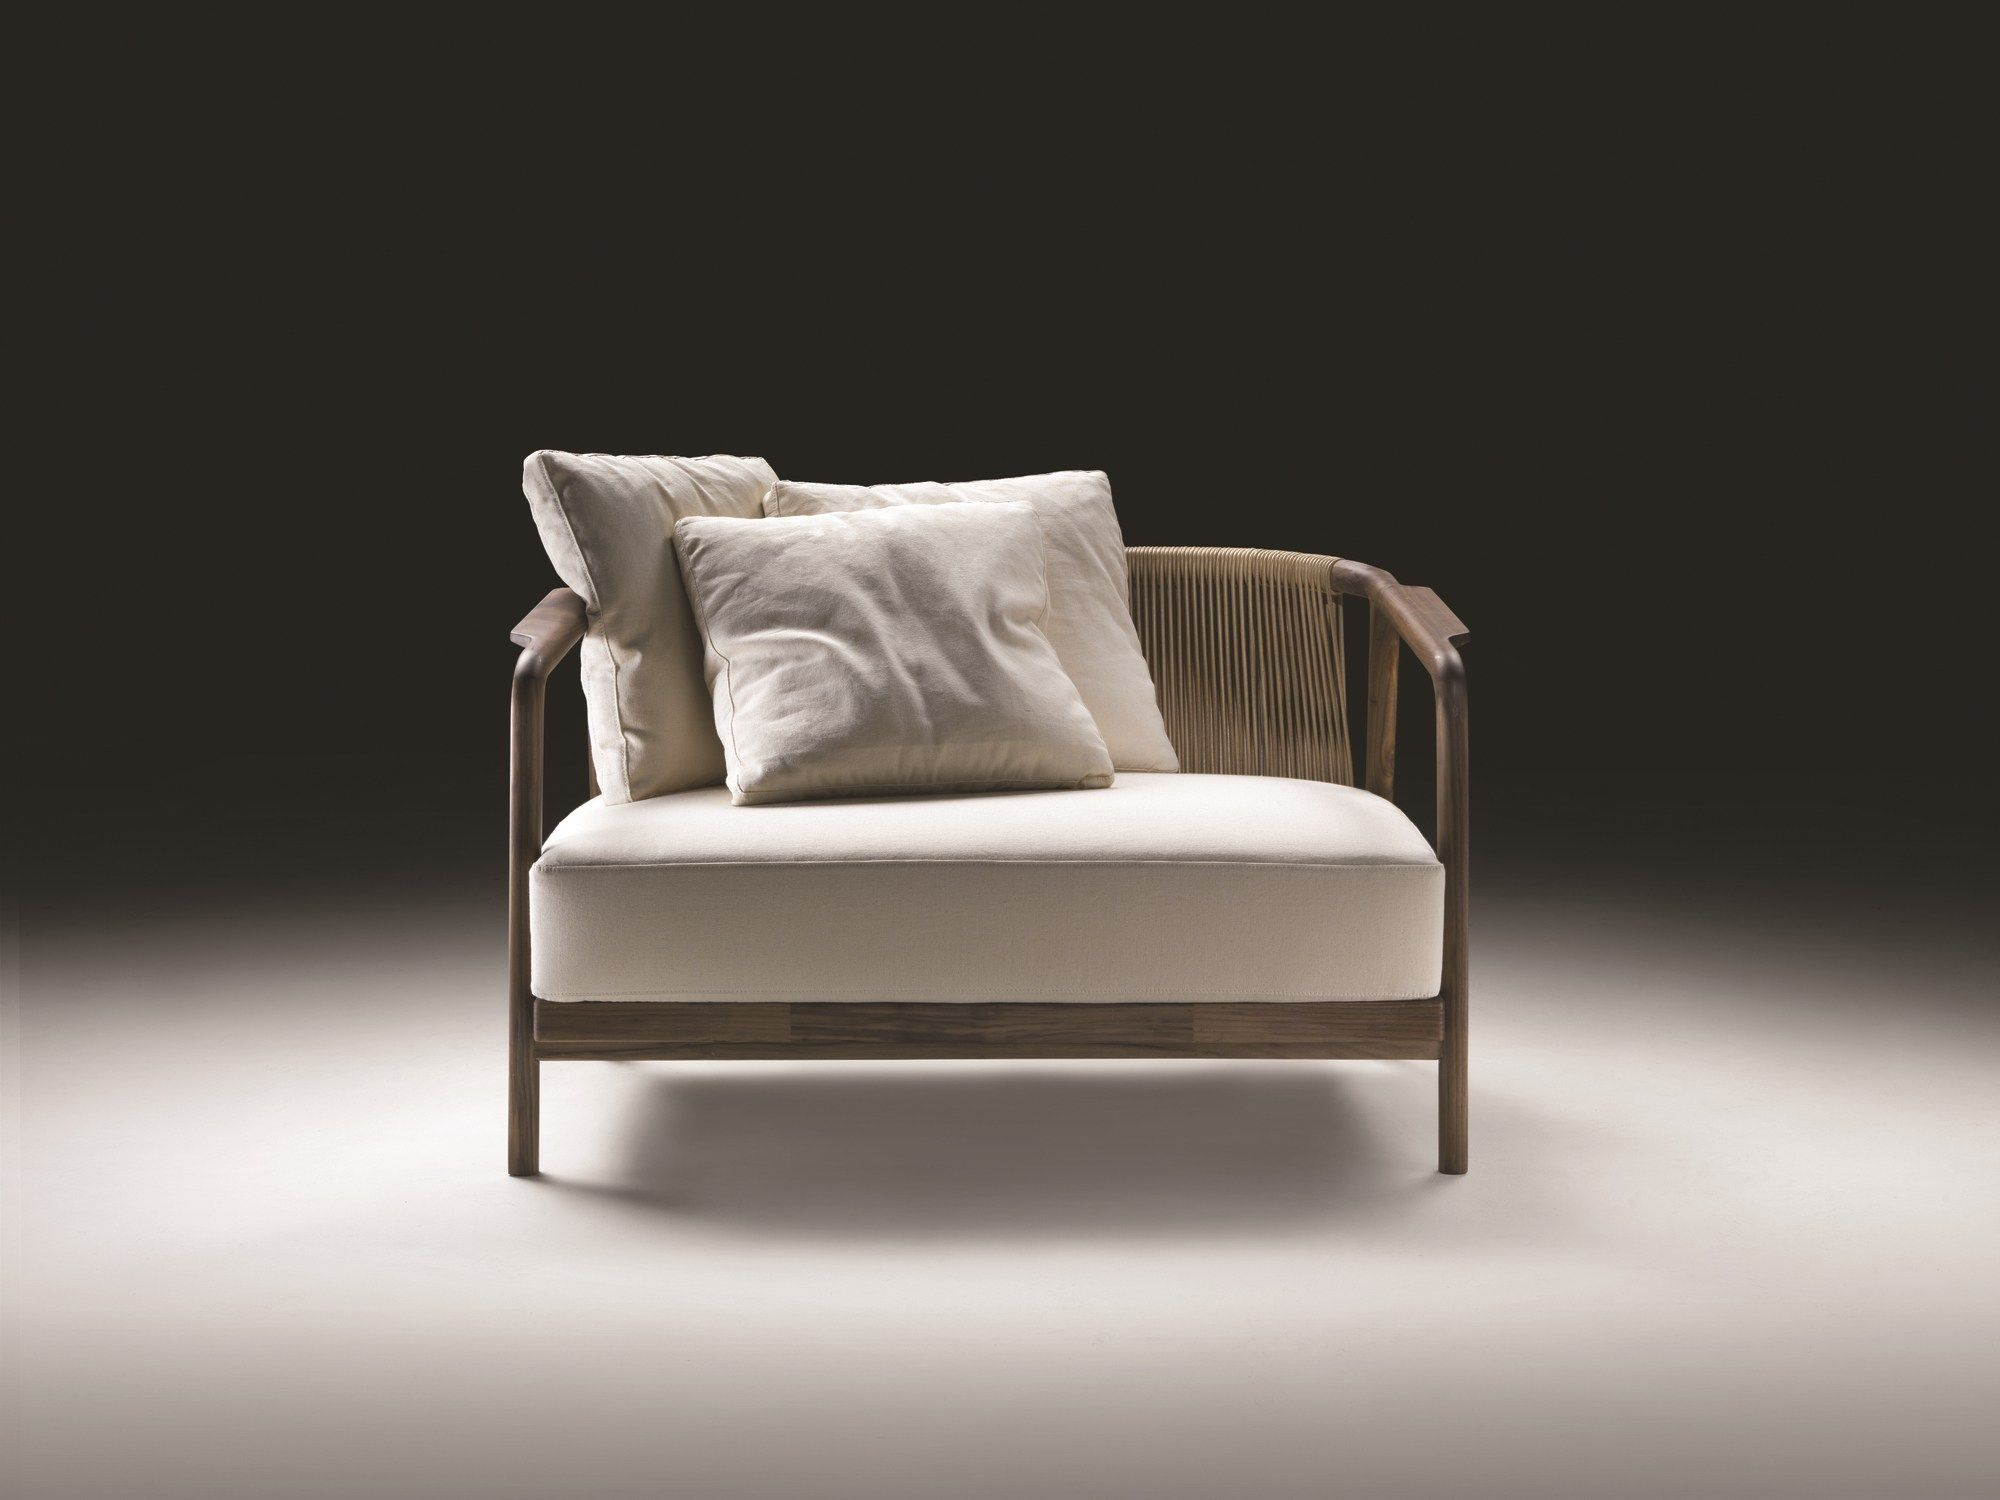 Download the catalogue and request prices of crono small sofa by download the catalogue and request prices of crono small sofa by flexform small sofa parisarafo Gallery